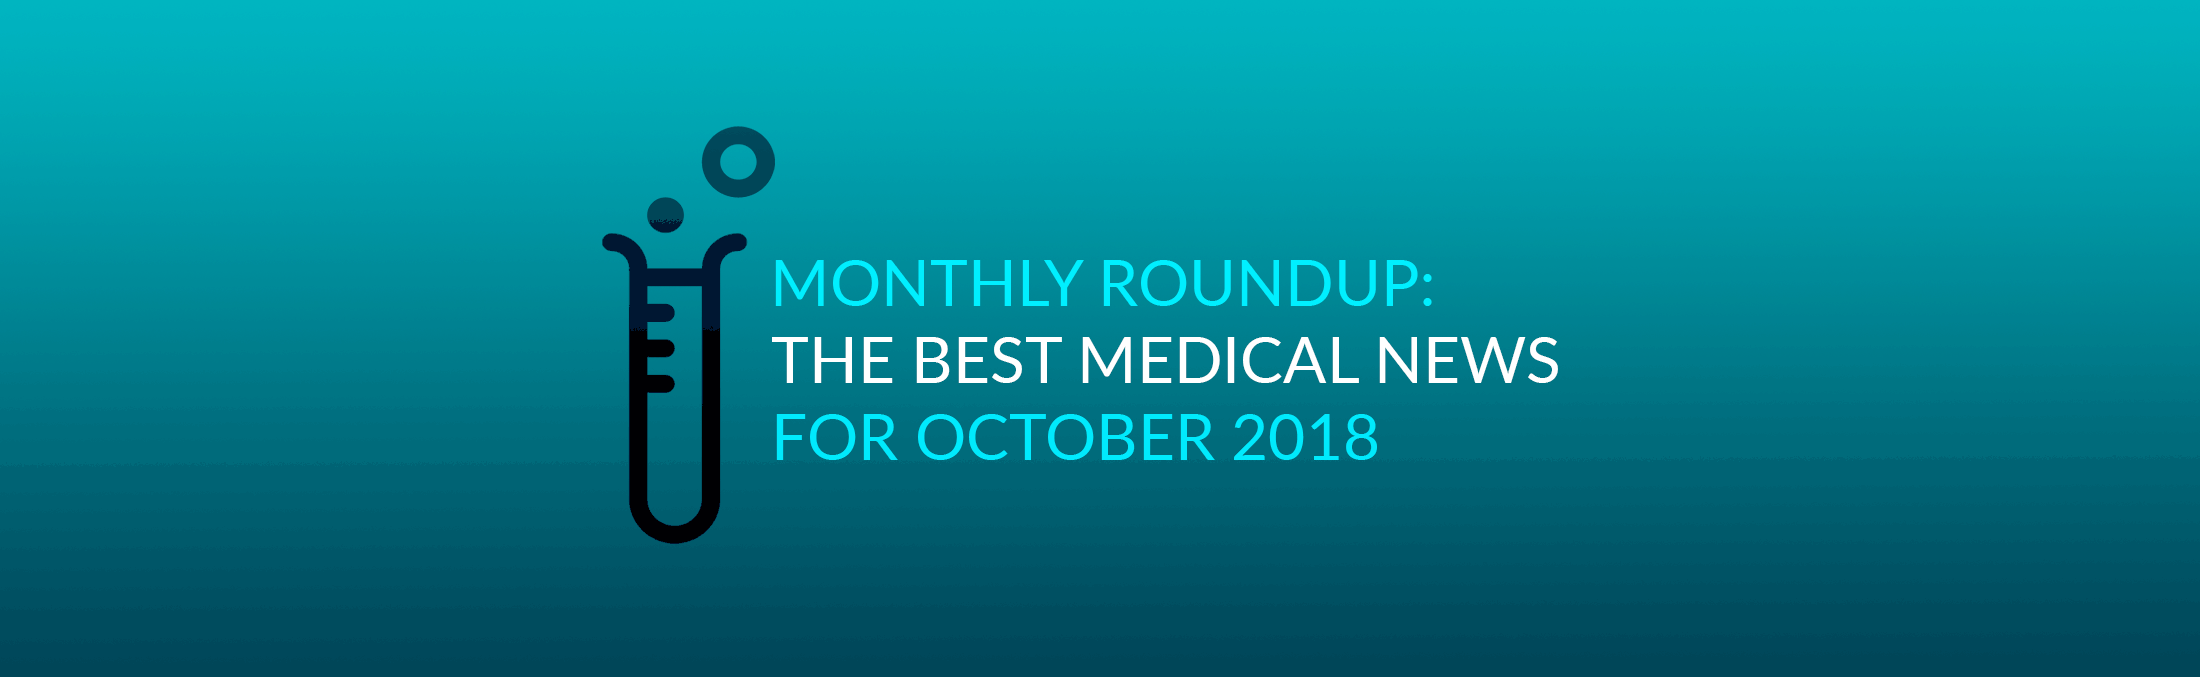 Best medical news 2018 october seriousmd